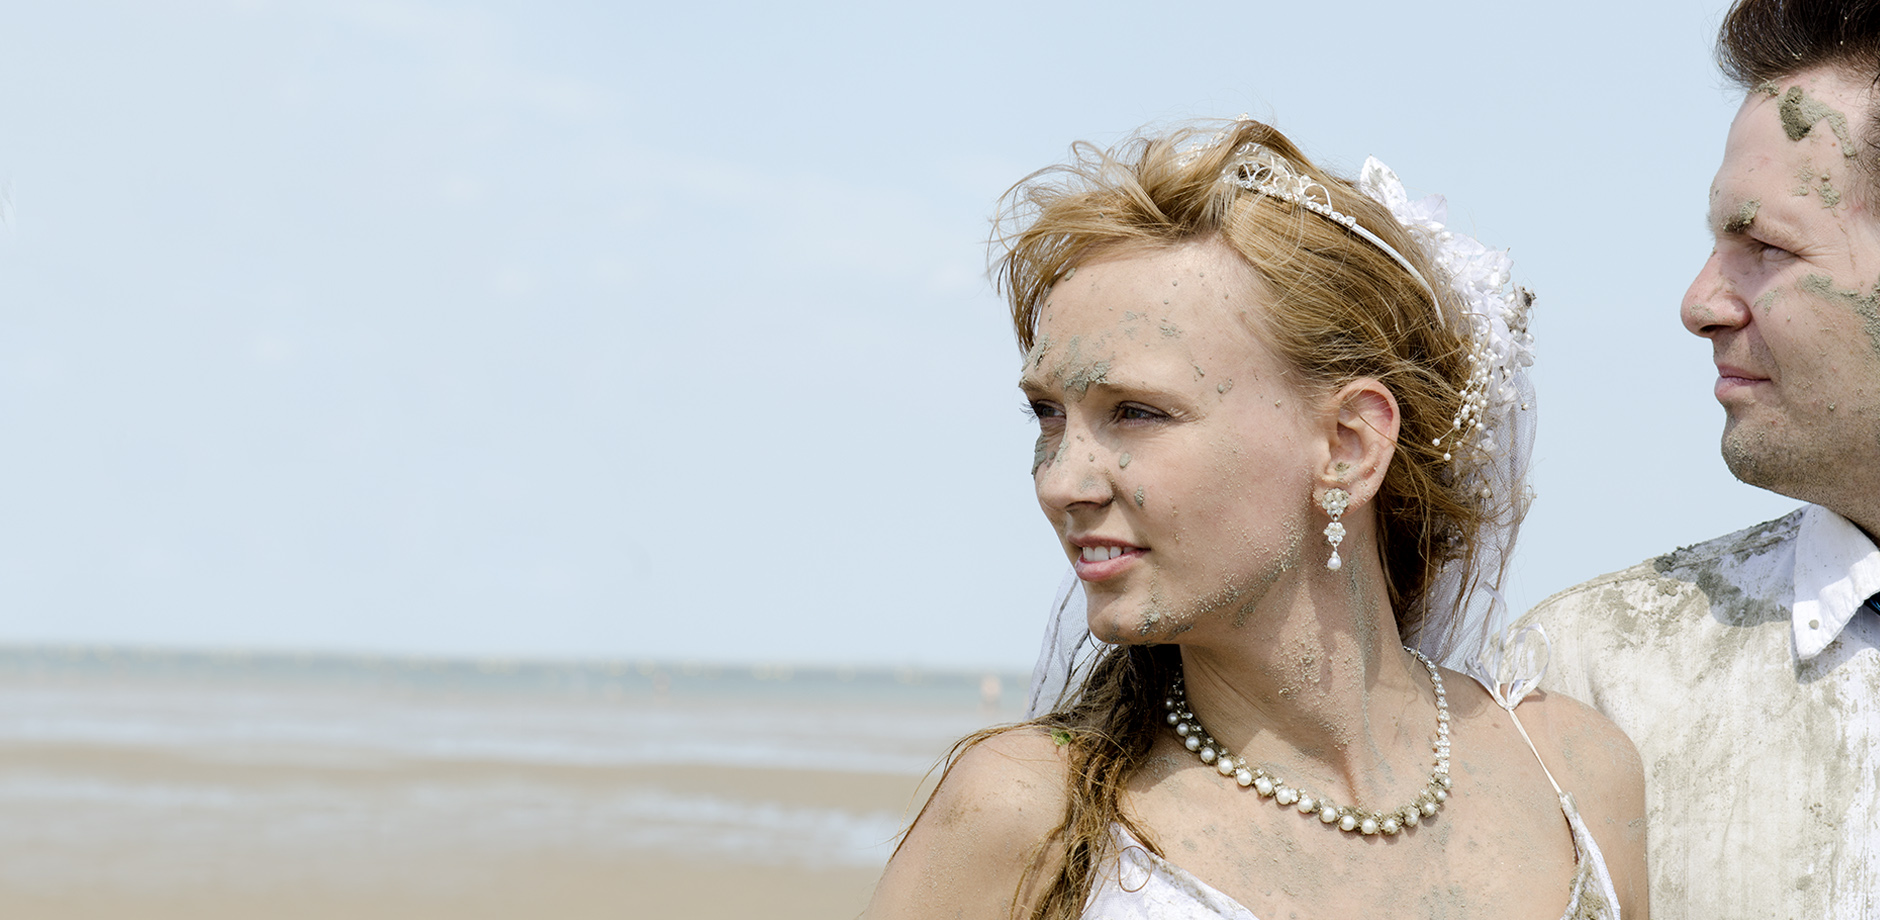 Das gute Portrait, Hochzeit, After Wedding, Trash the Dress, Nordseeshooting